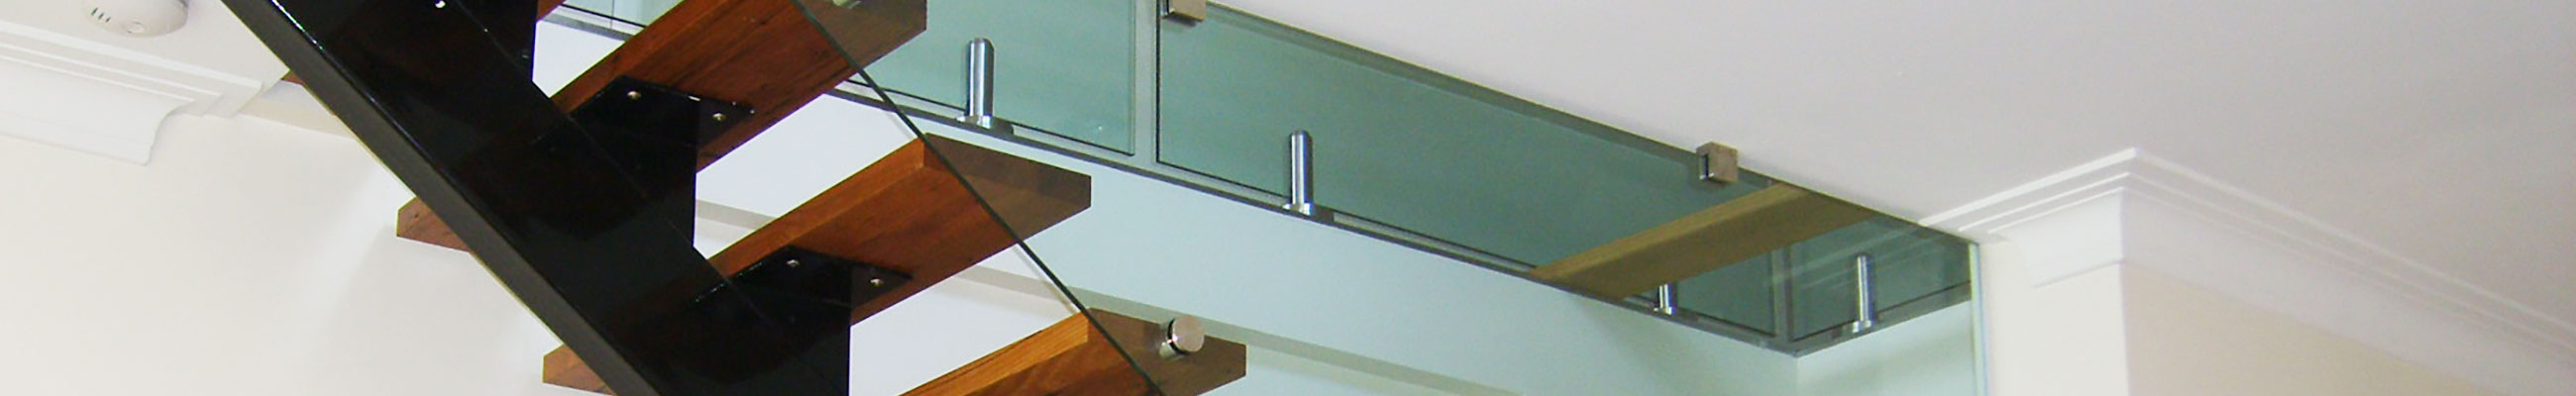 stairs-banner